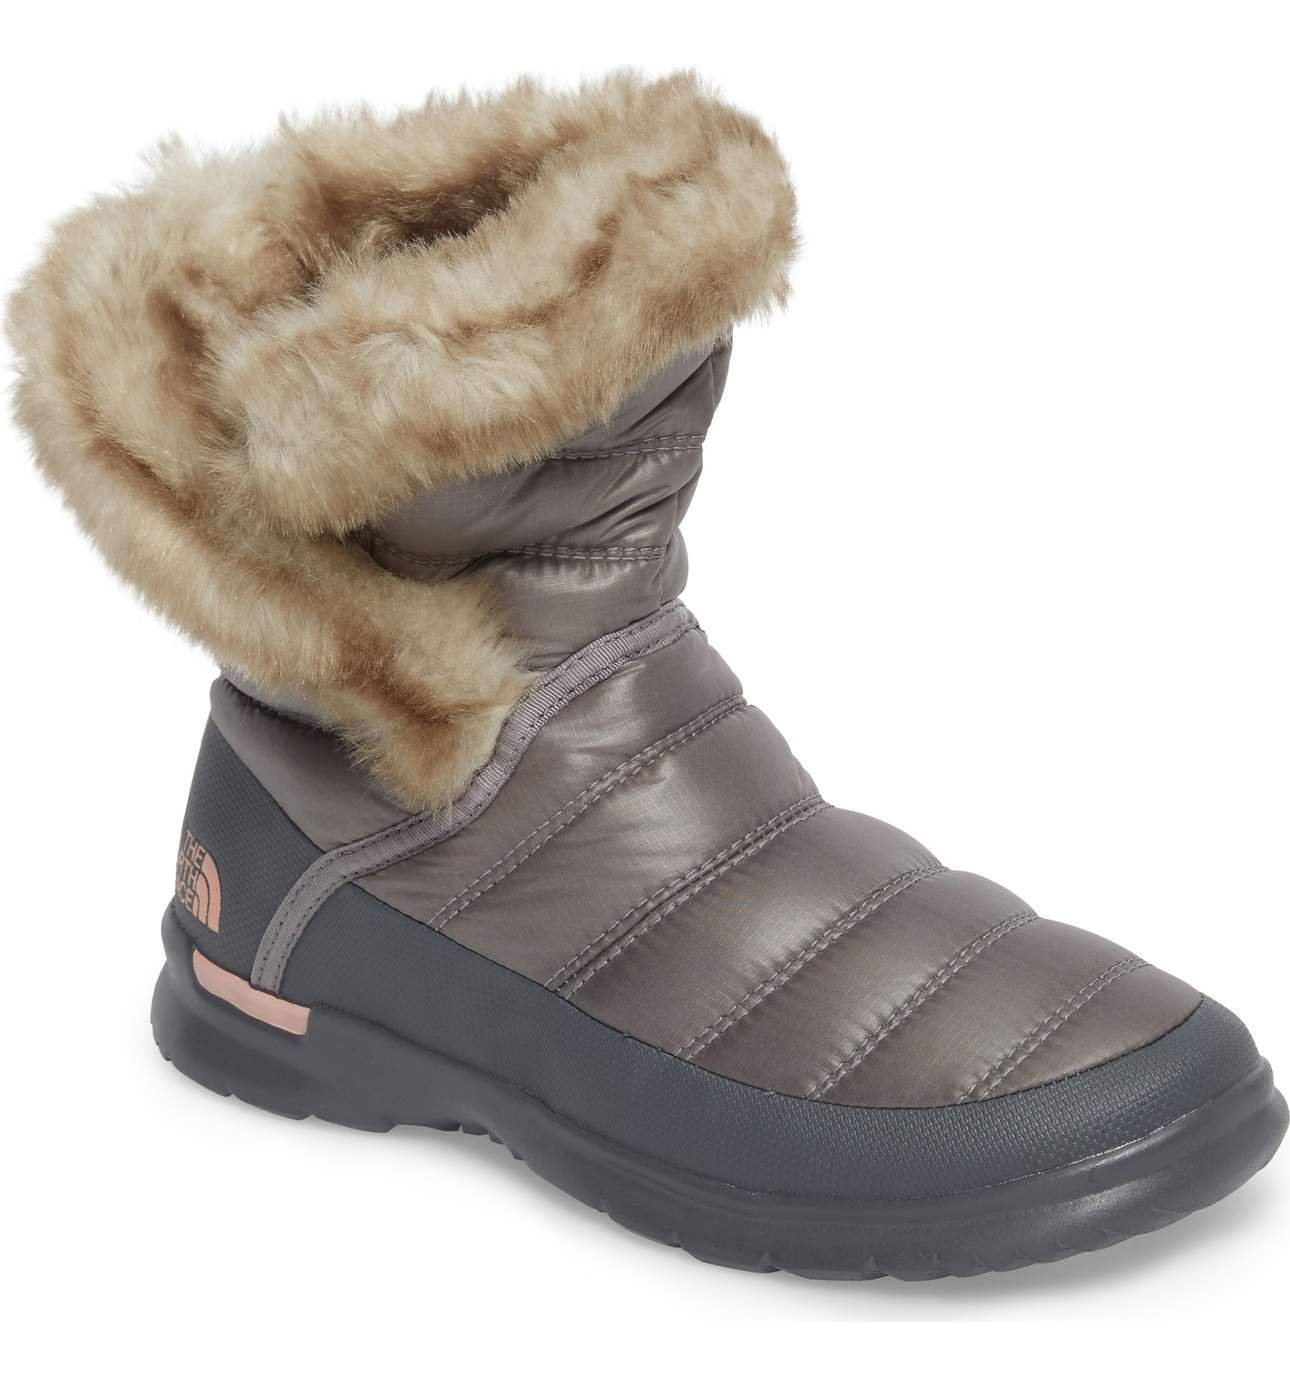 The North Face Womens Thermoball Microbaffle Bootie II B01NCNBCGJ 7 B(M) US|Shiny Frost Grey/Evening Sand Pink (Past Season)